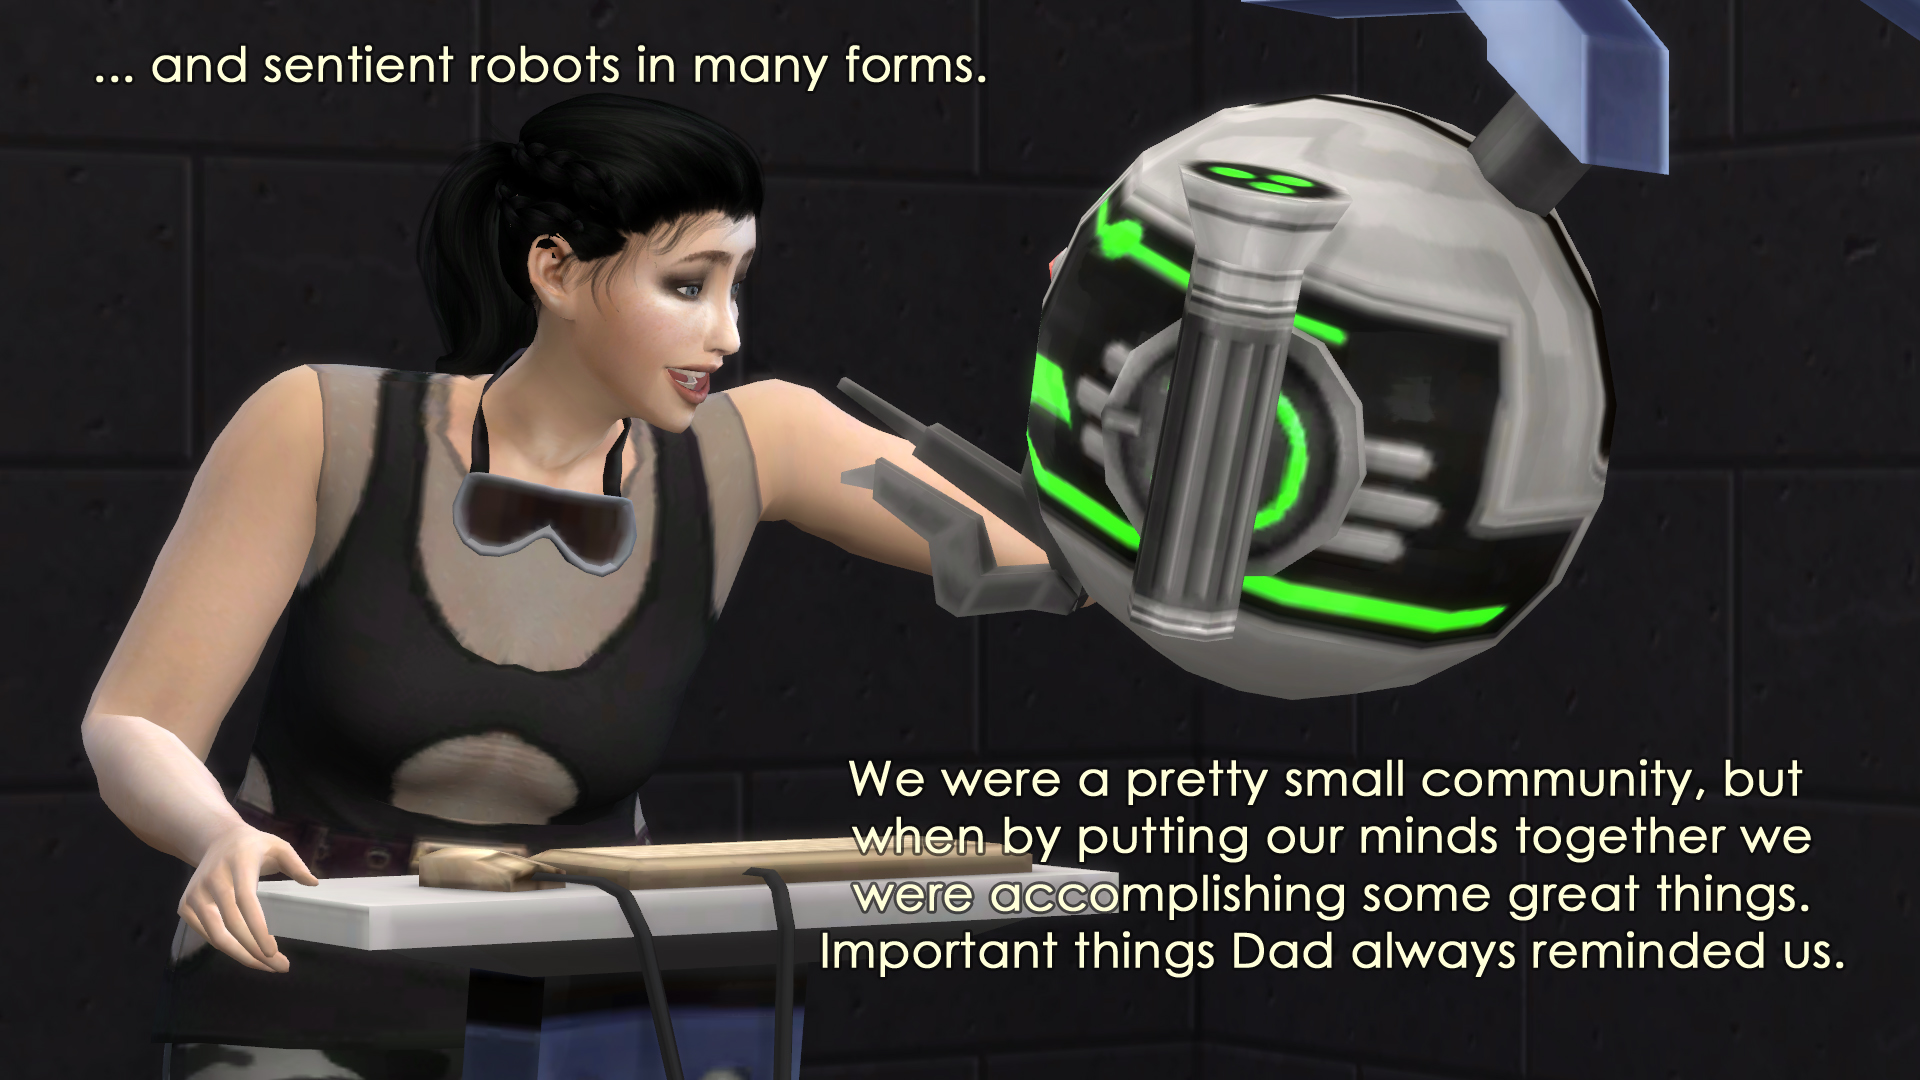 8 and robots